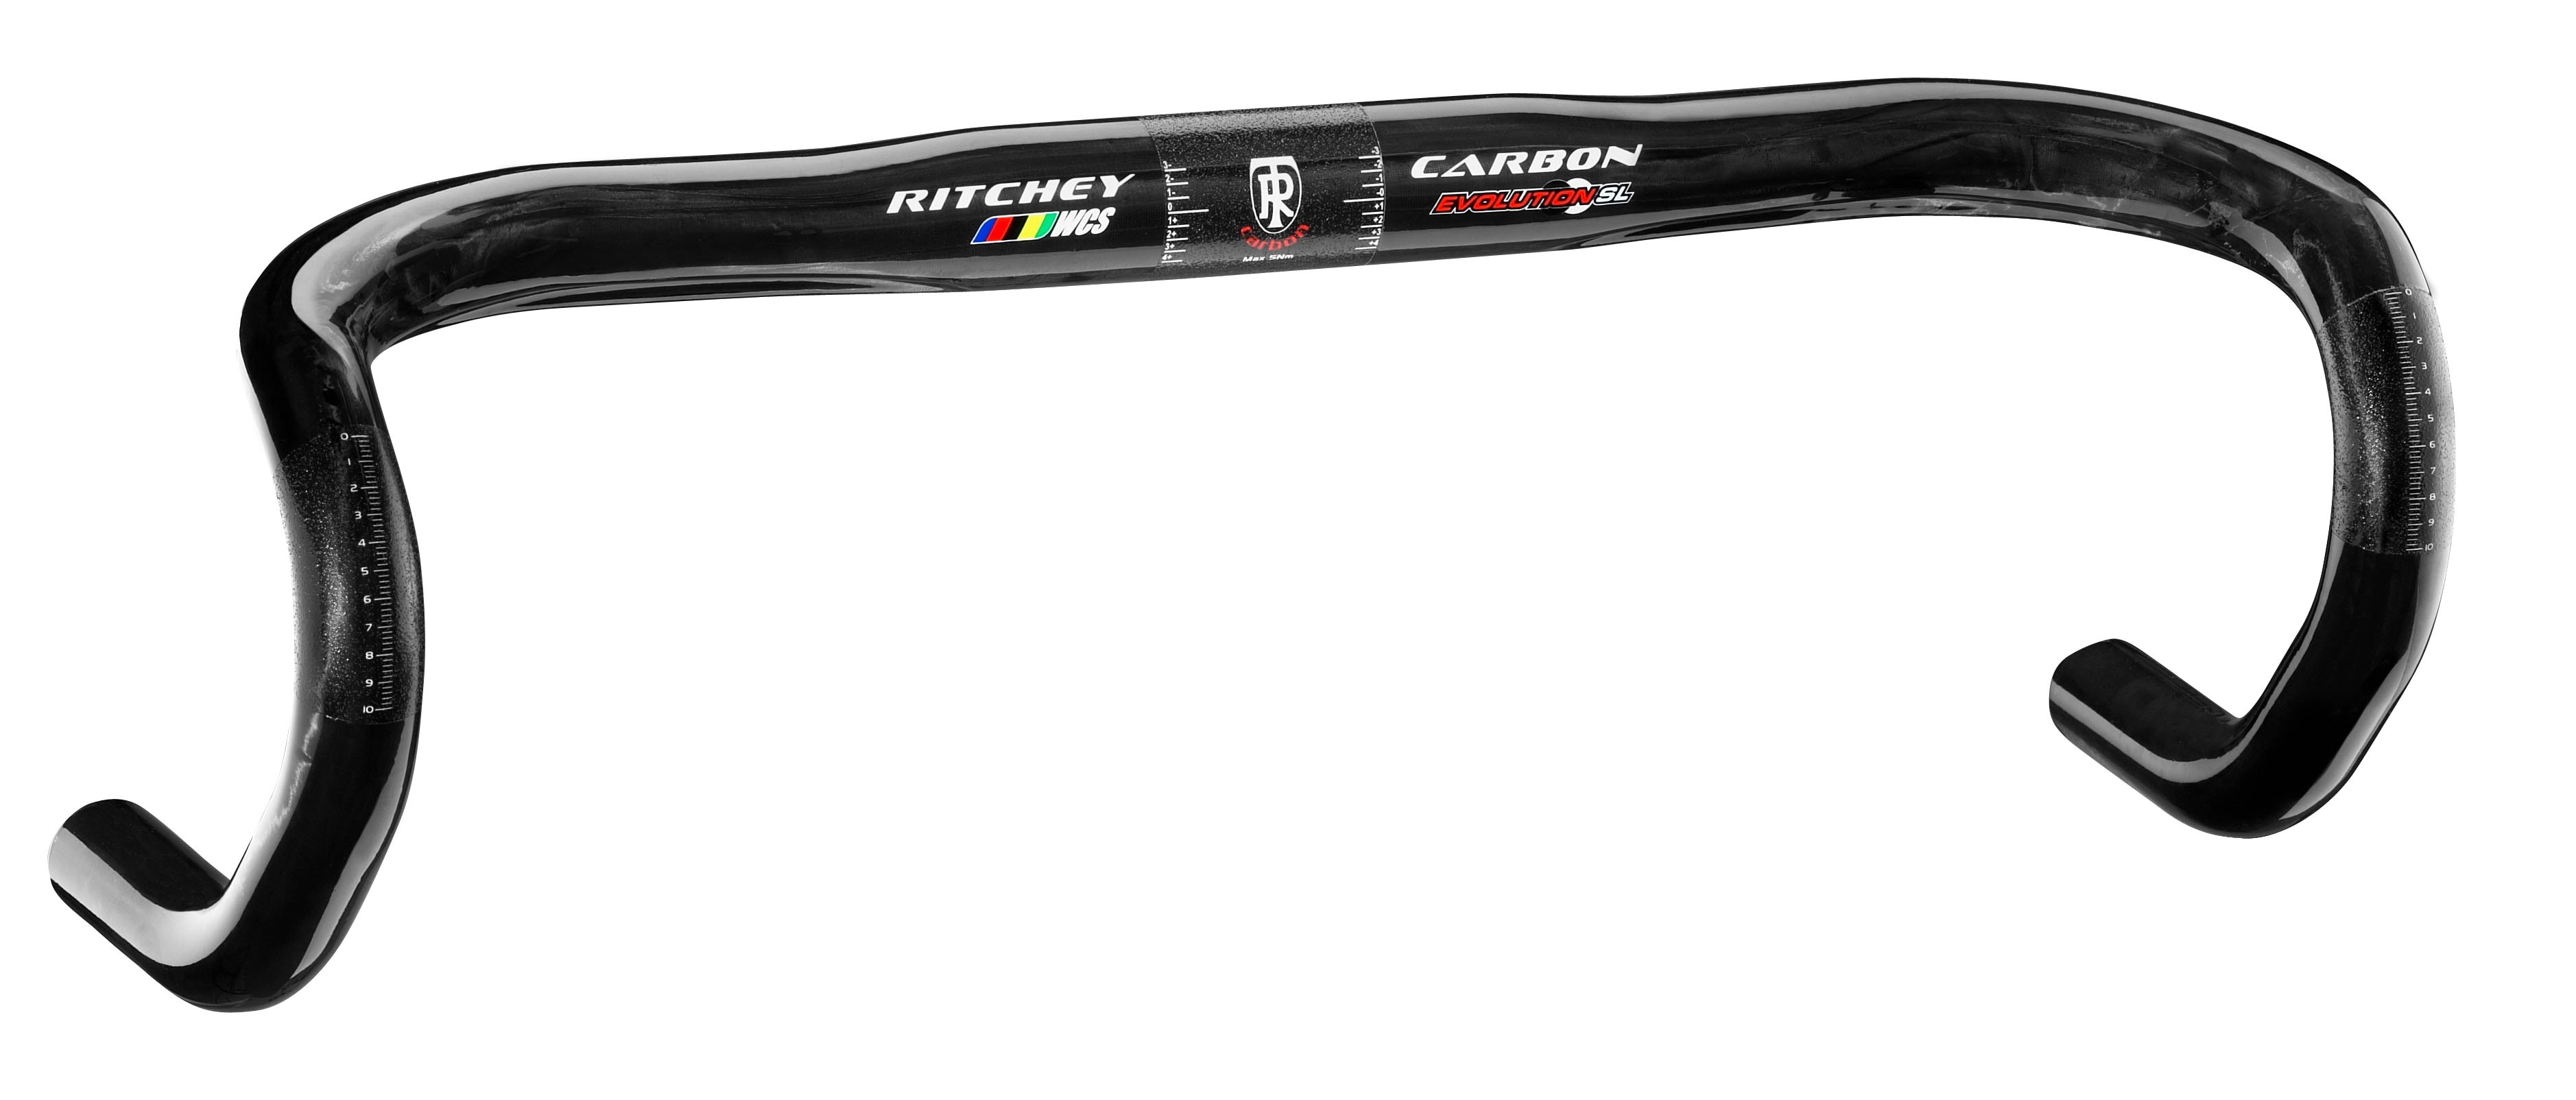 Ritchey Styre, WCS Evo Curve Carbon